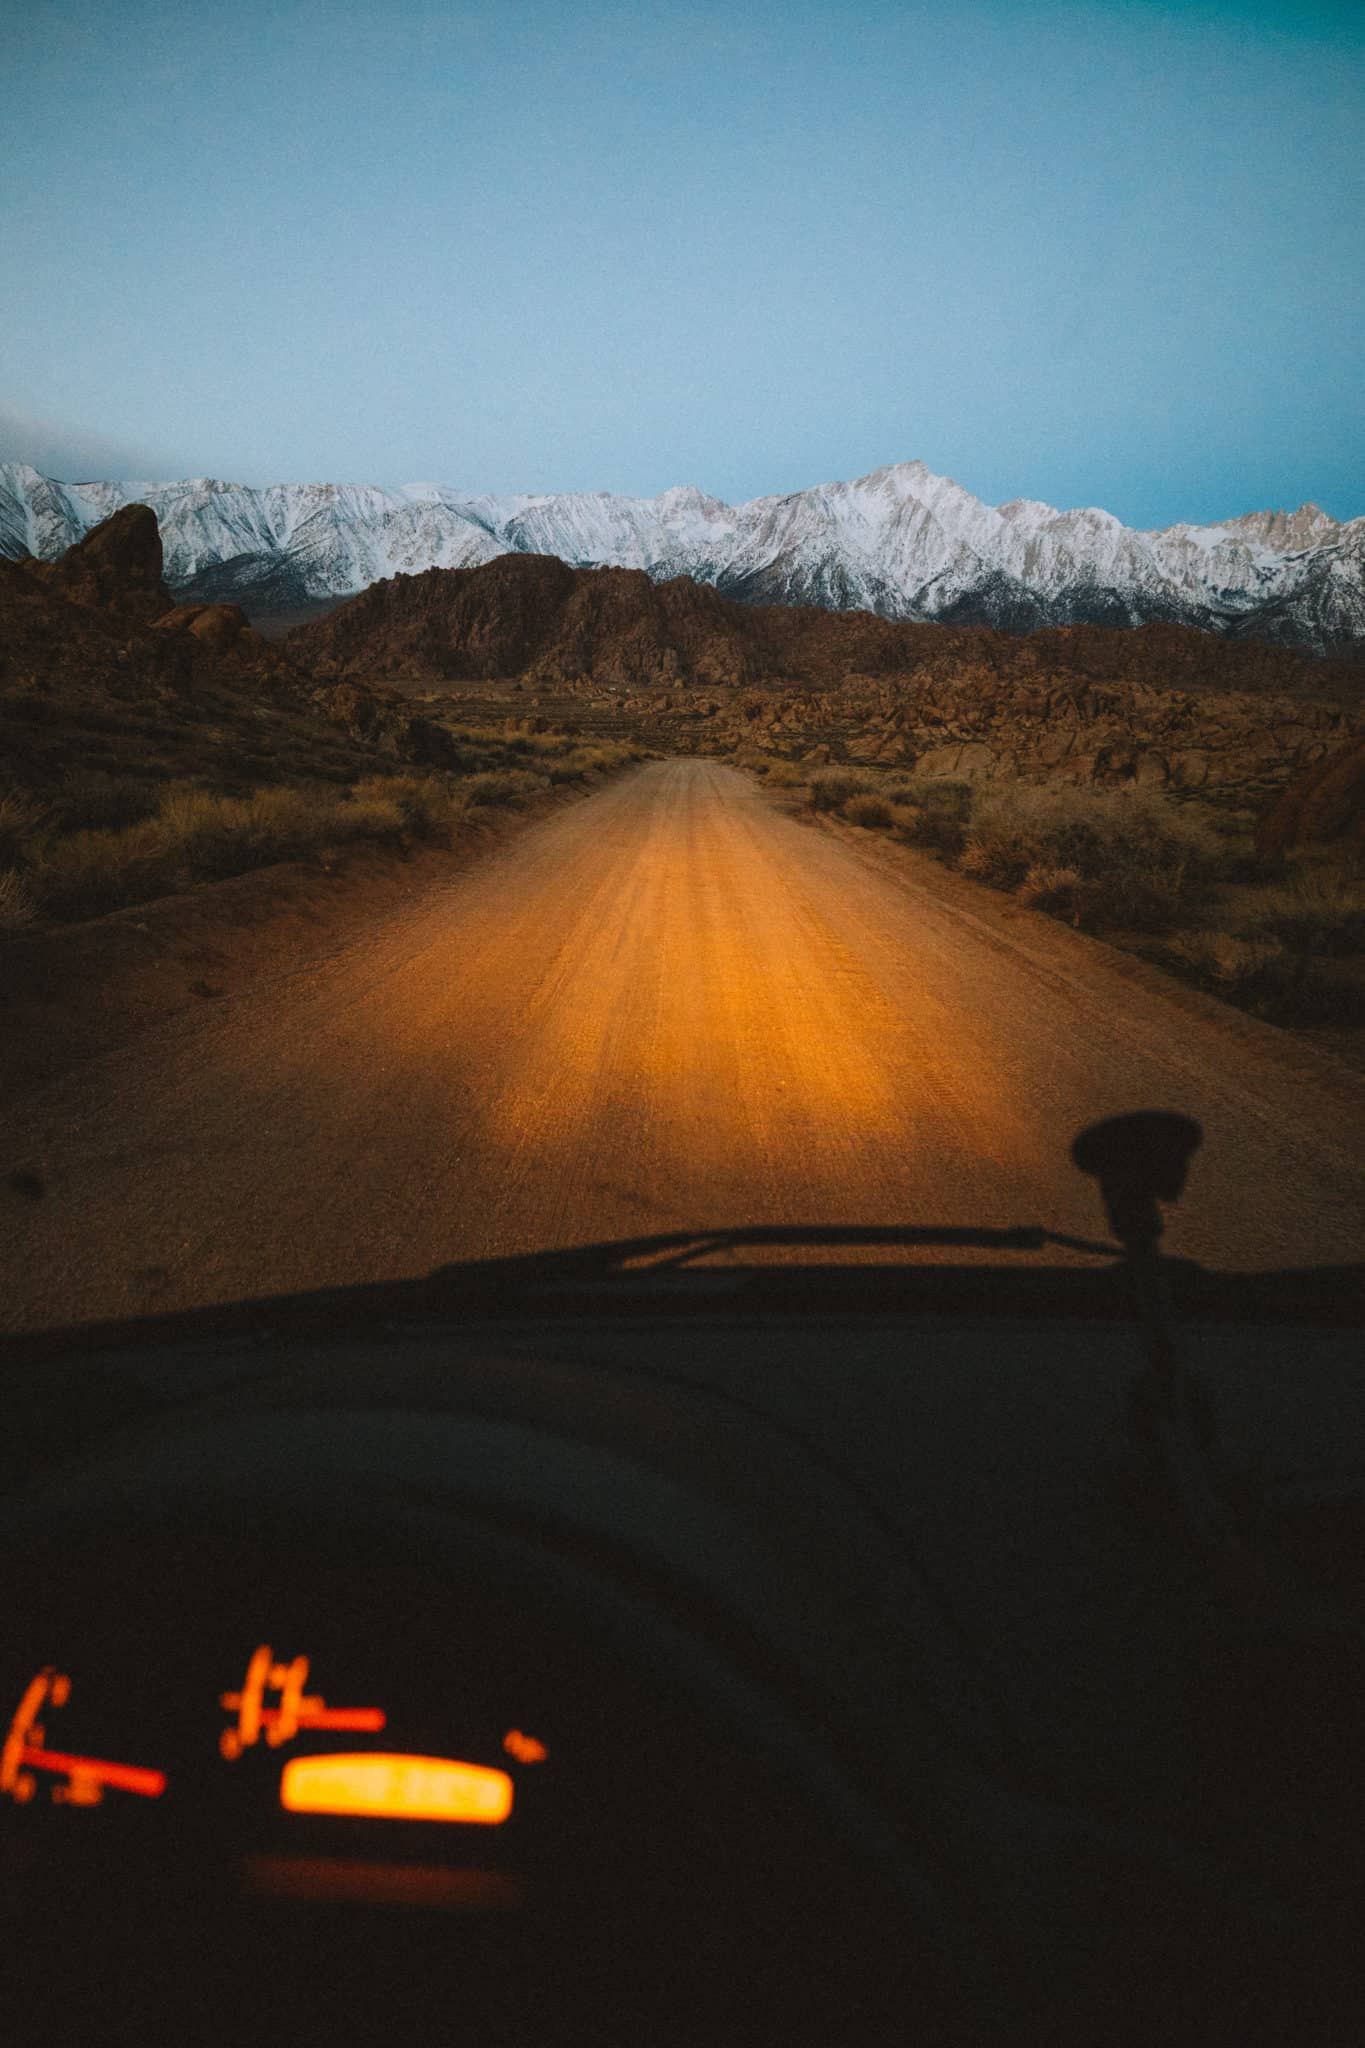 driving to Movie Road in Alabama Hills